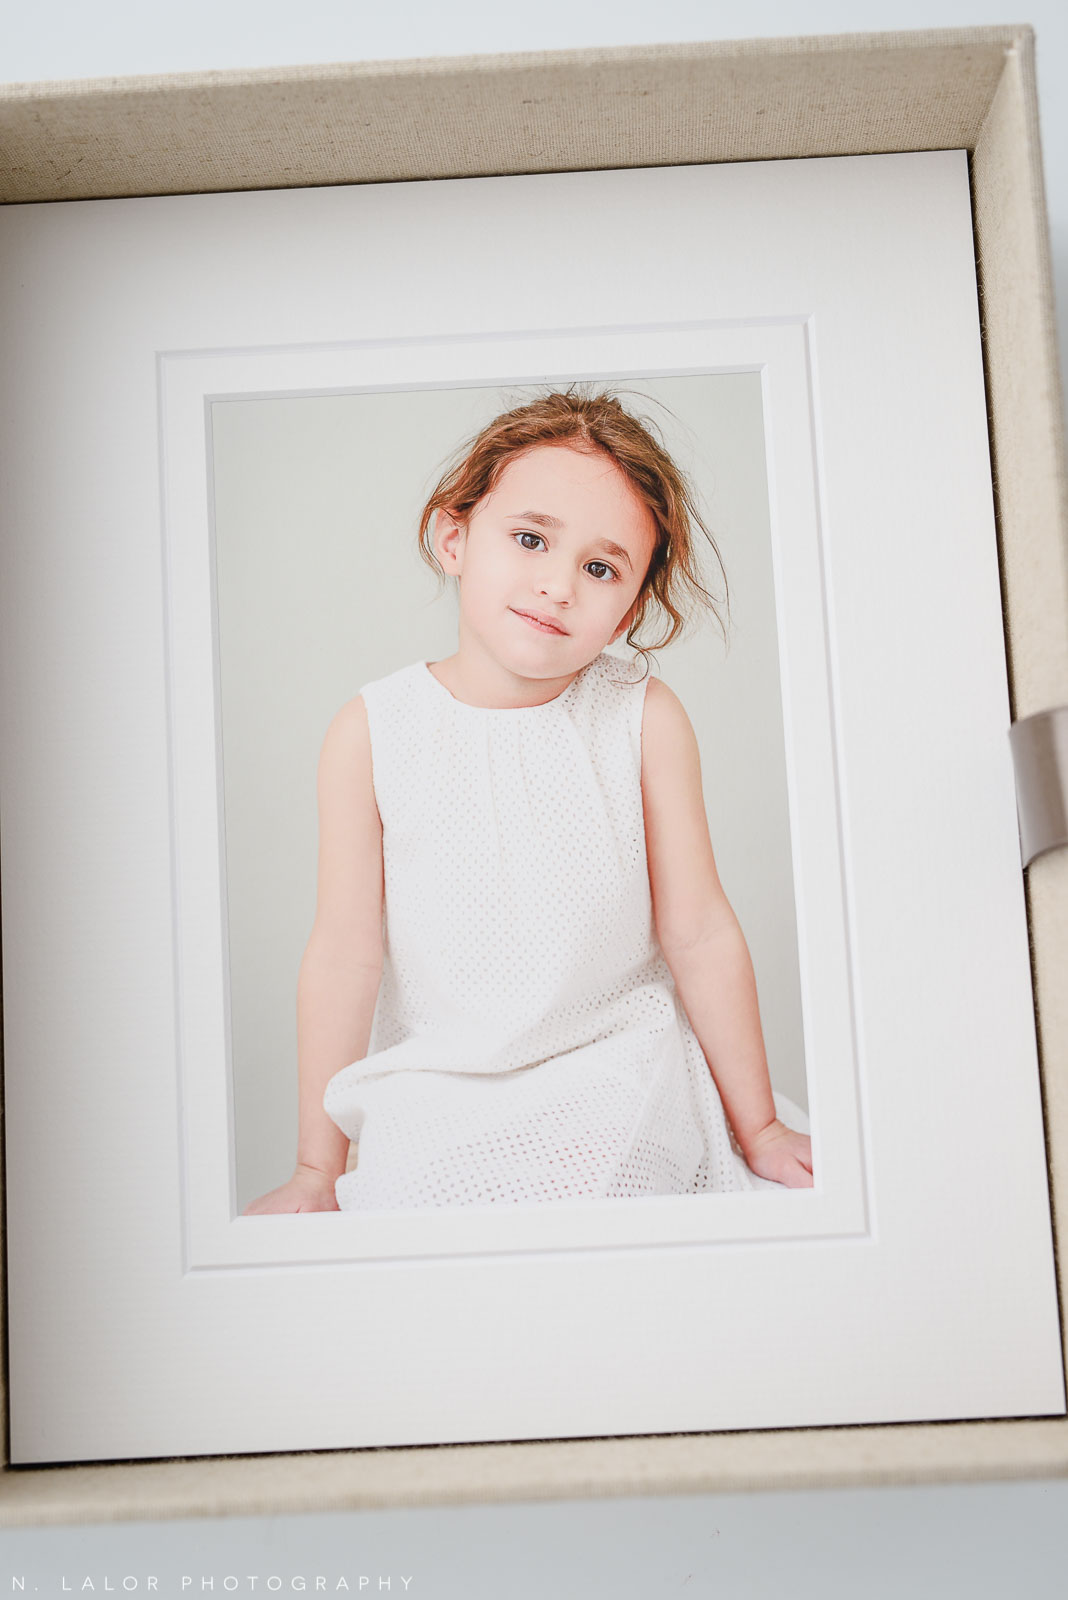 Image of an archival print in a presentation box. Studio child portrait by N. Lalor Photography in Greenwich, Connecticut.